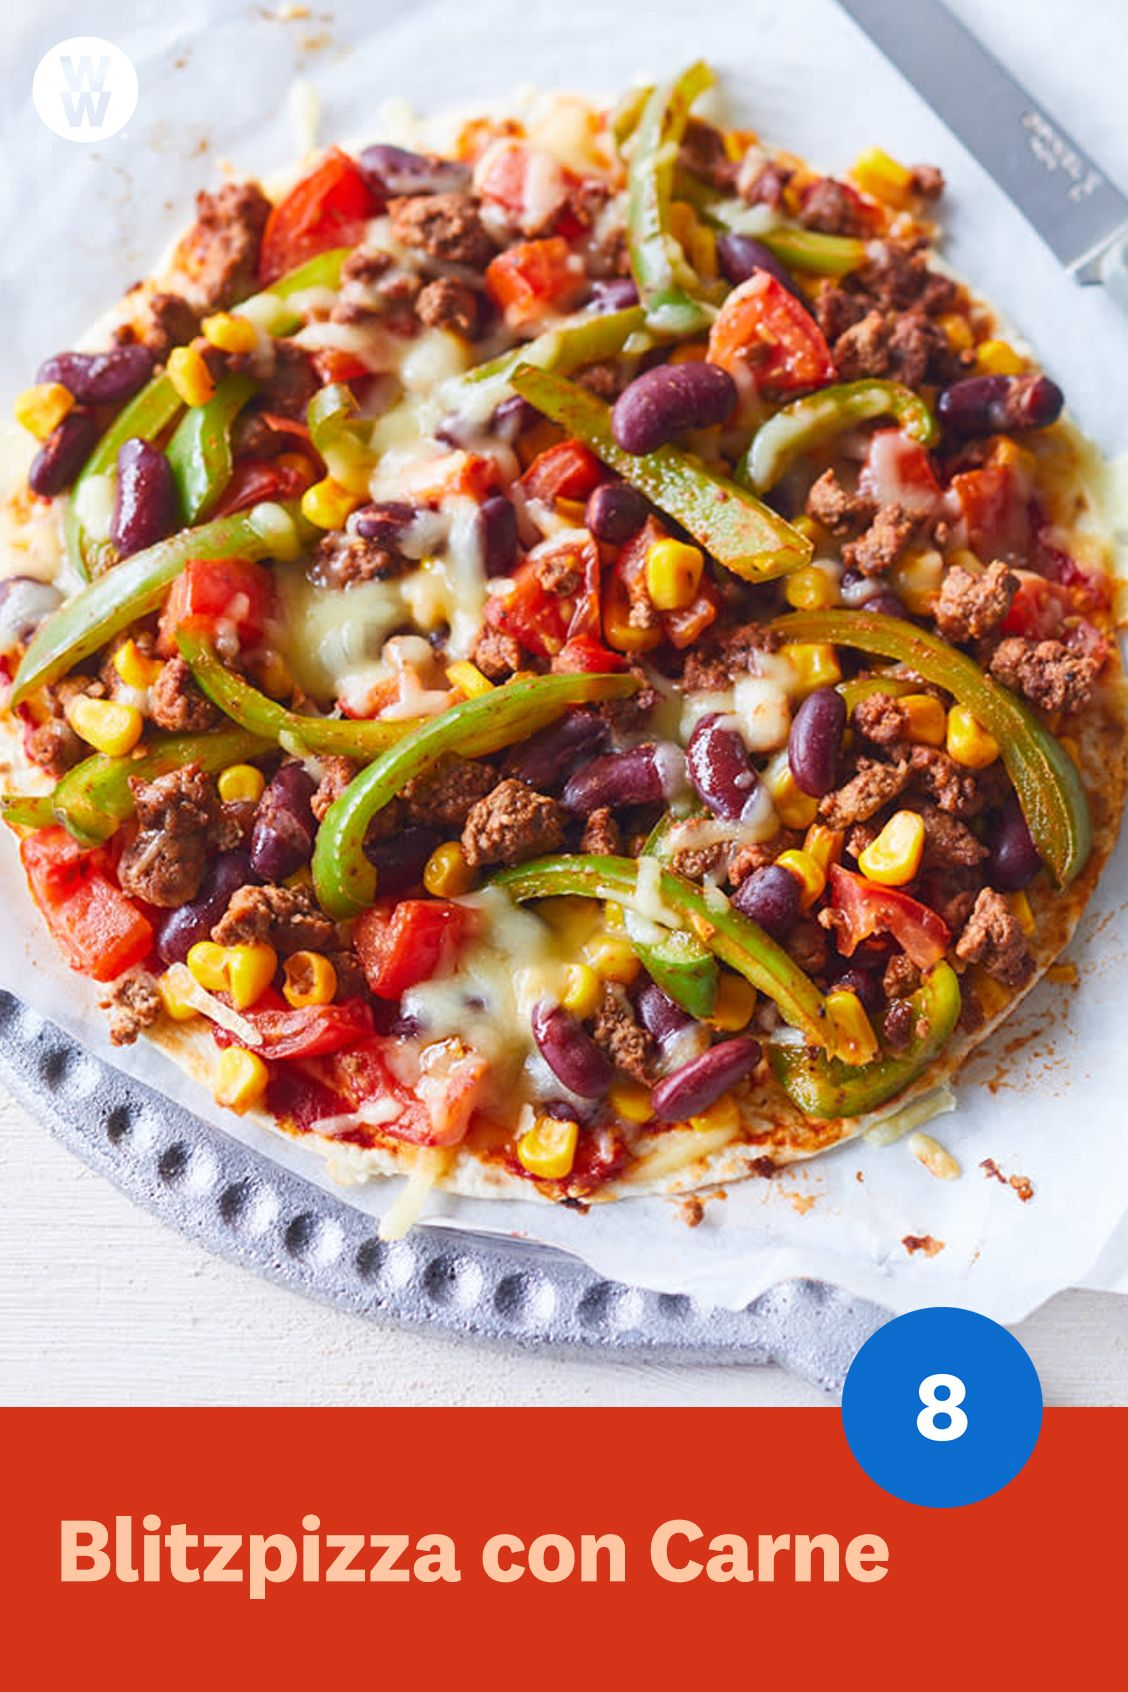 Photo of Blitzpizza con Carne